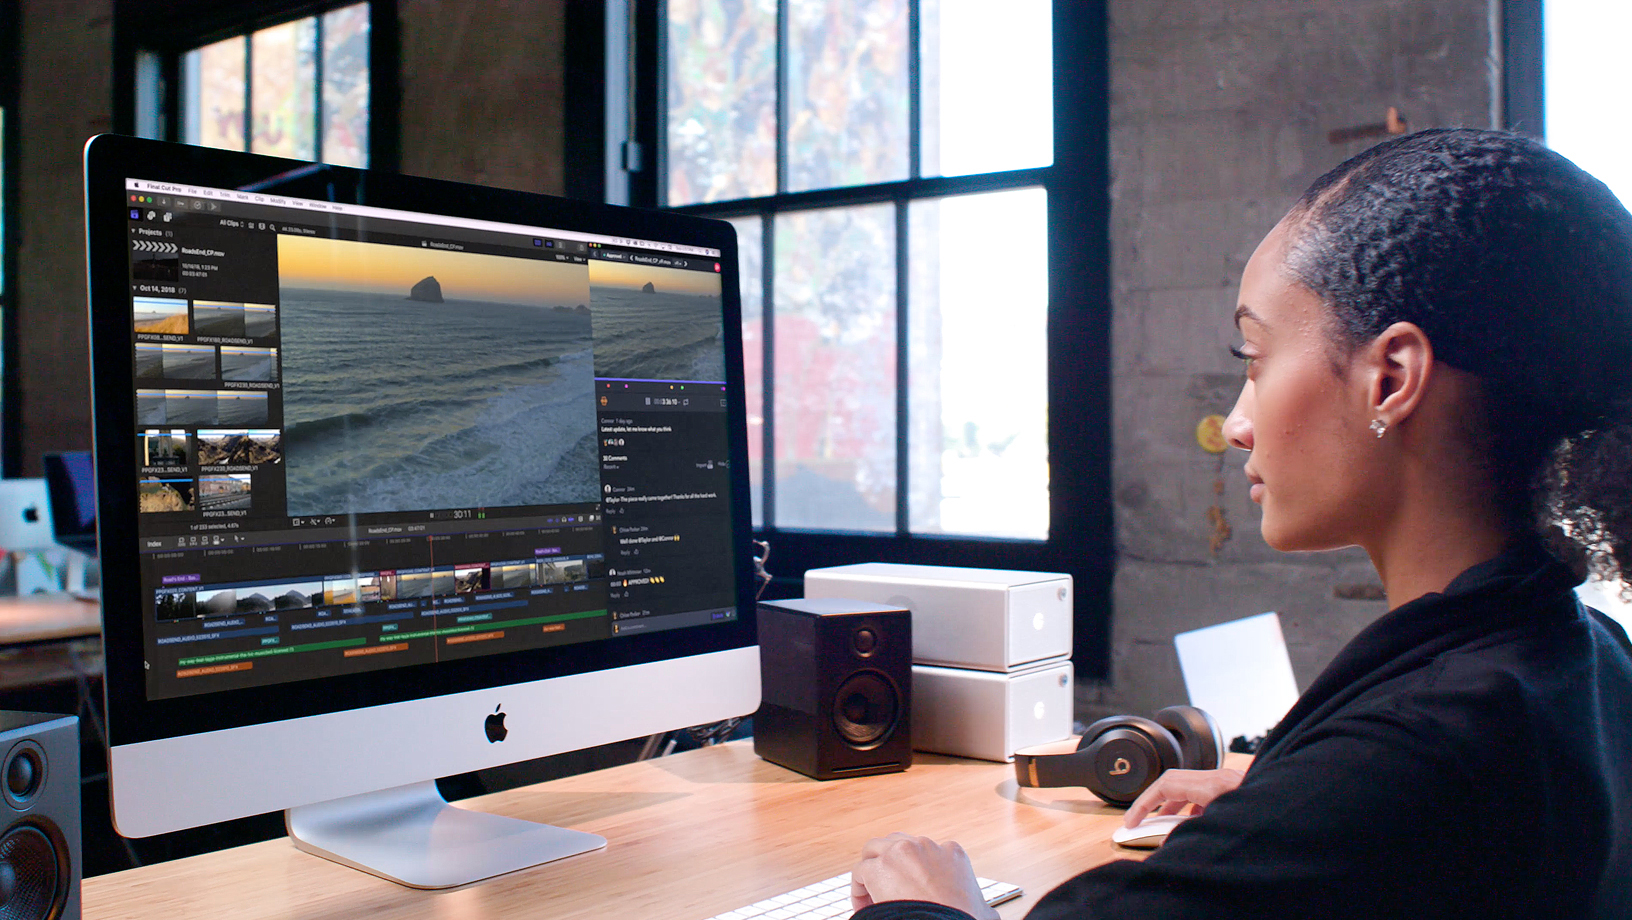 Apple upgrades iMac and iMac Pro, promising up to 240% more performance